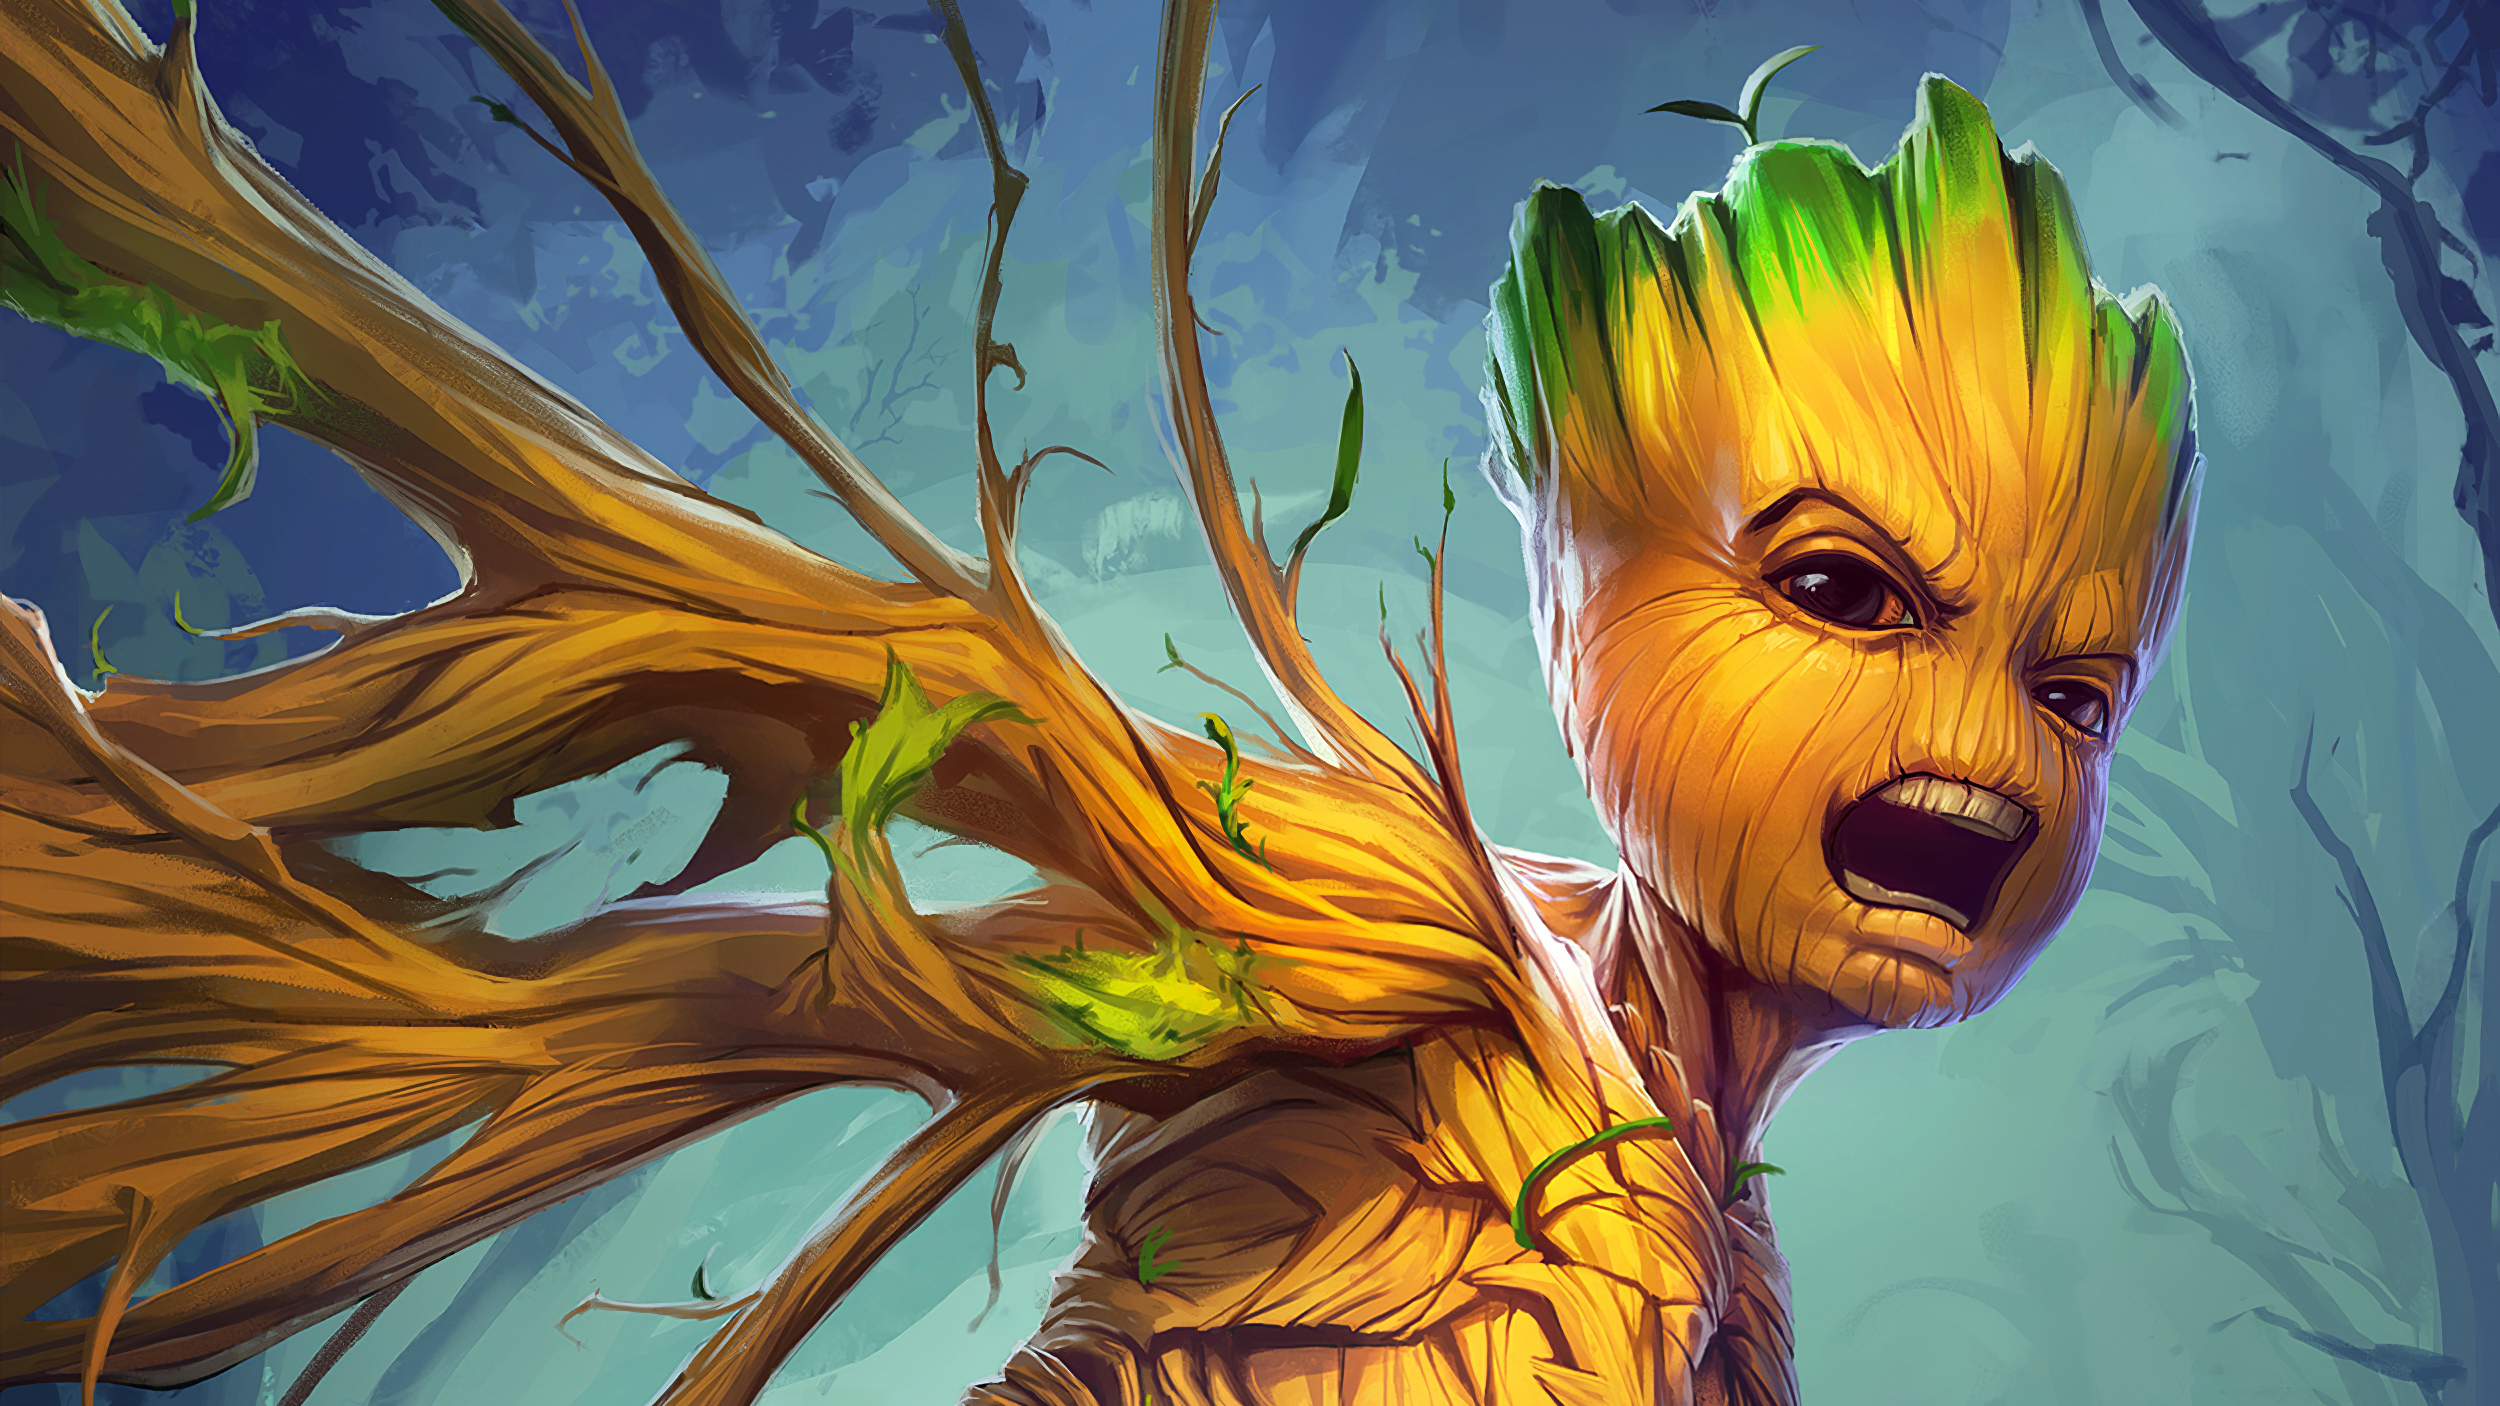 Wallpaper Of Baby Groot Guardians Of The Galaxy Marvel Comics